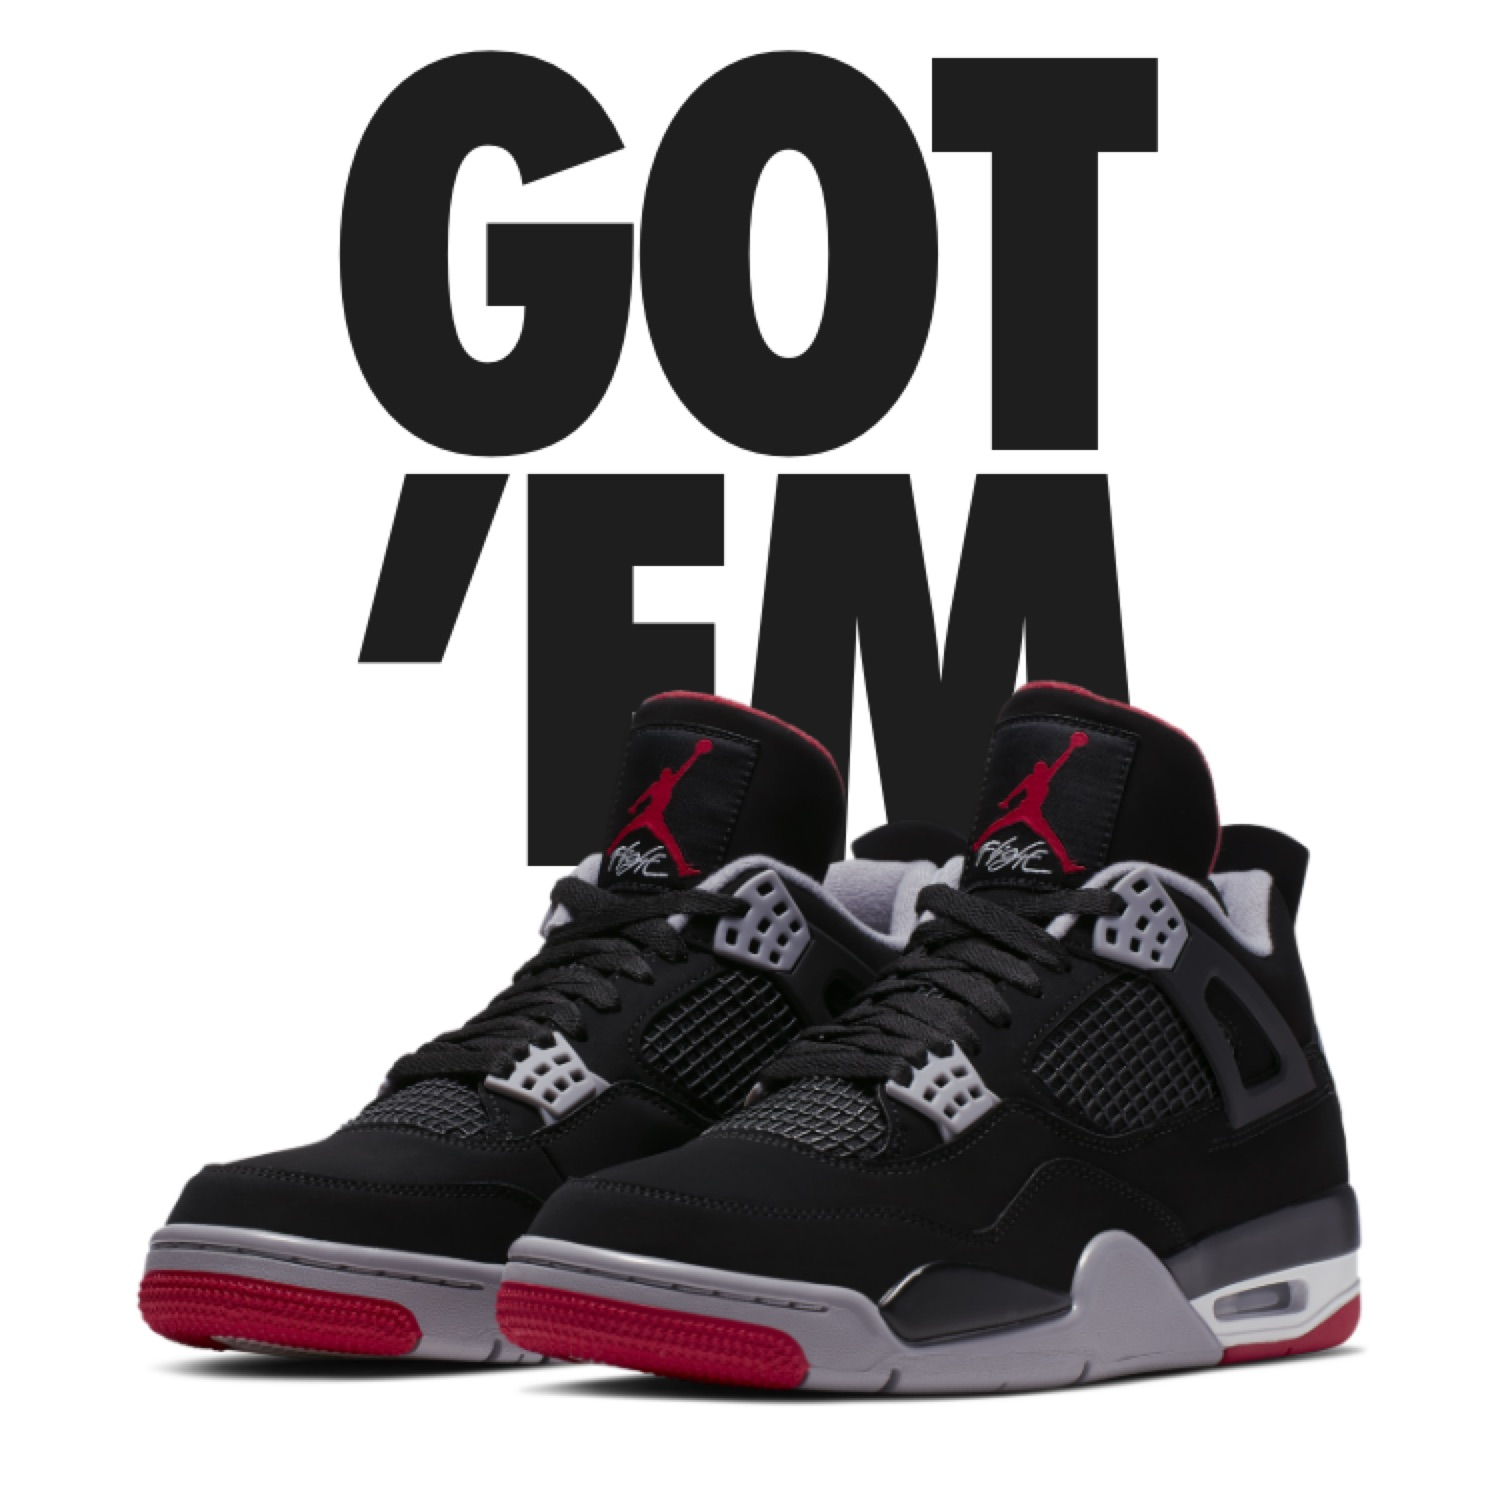 buy online 4d51f d135a Air Jordan 4 Retro Bred Eu 45,5 Us 11.5